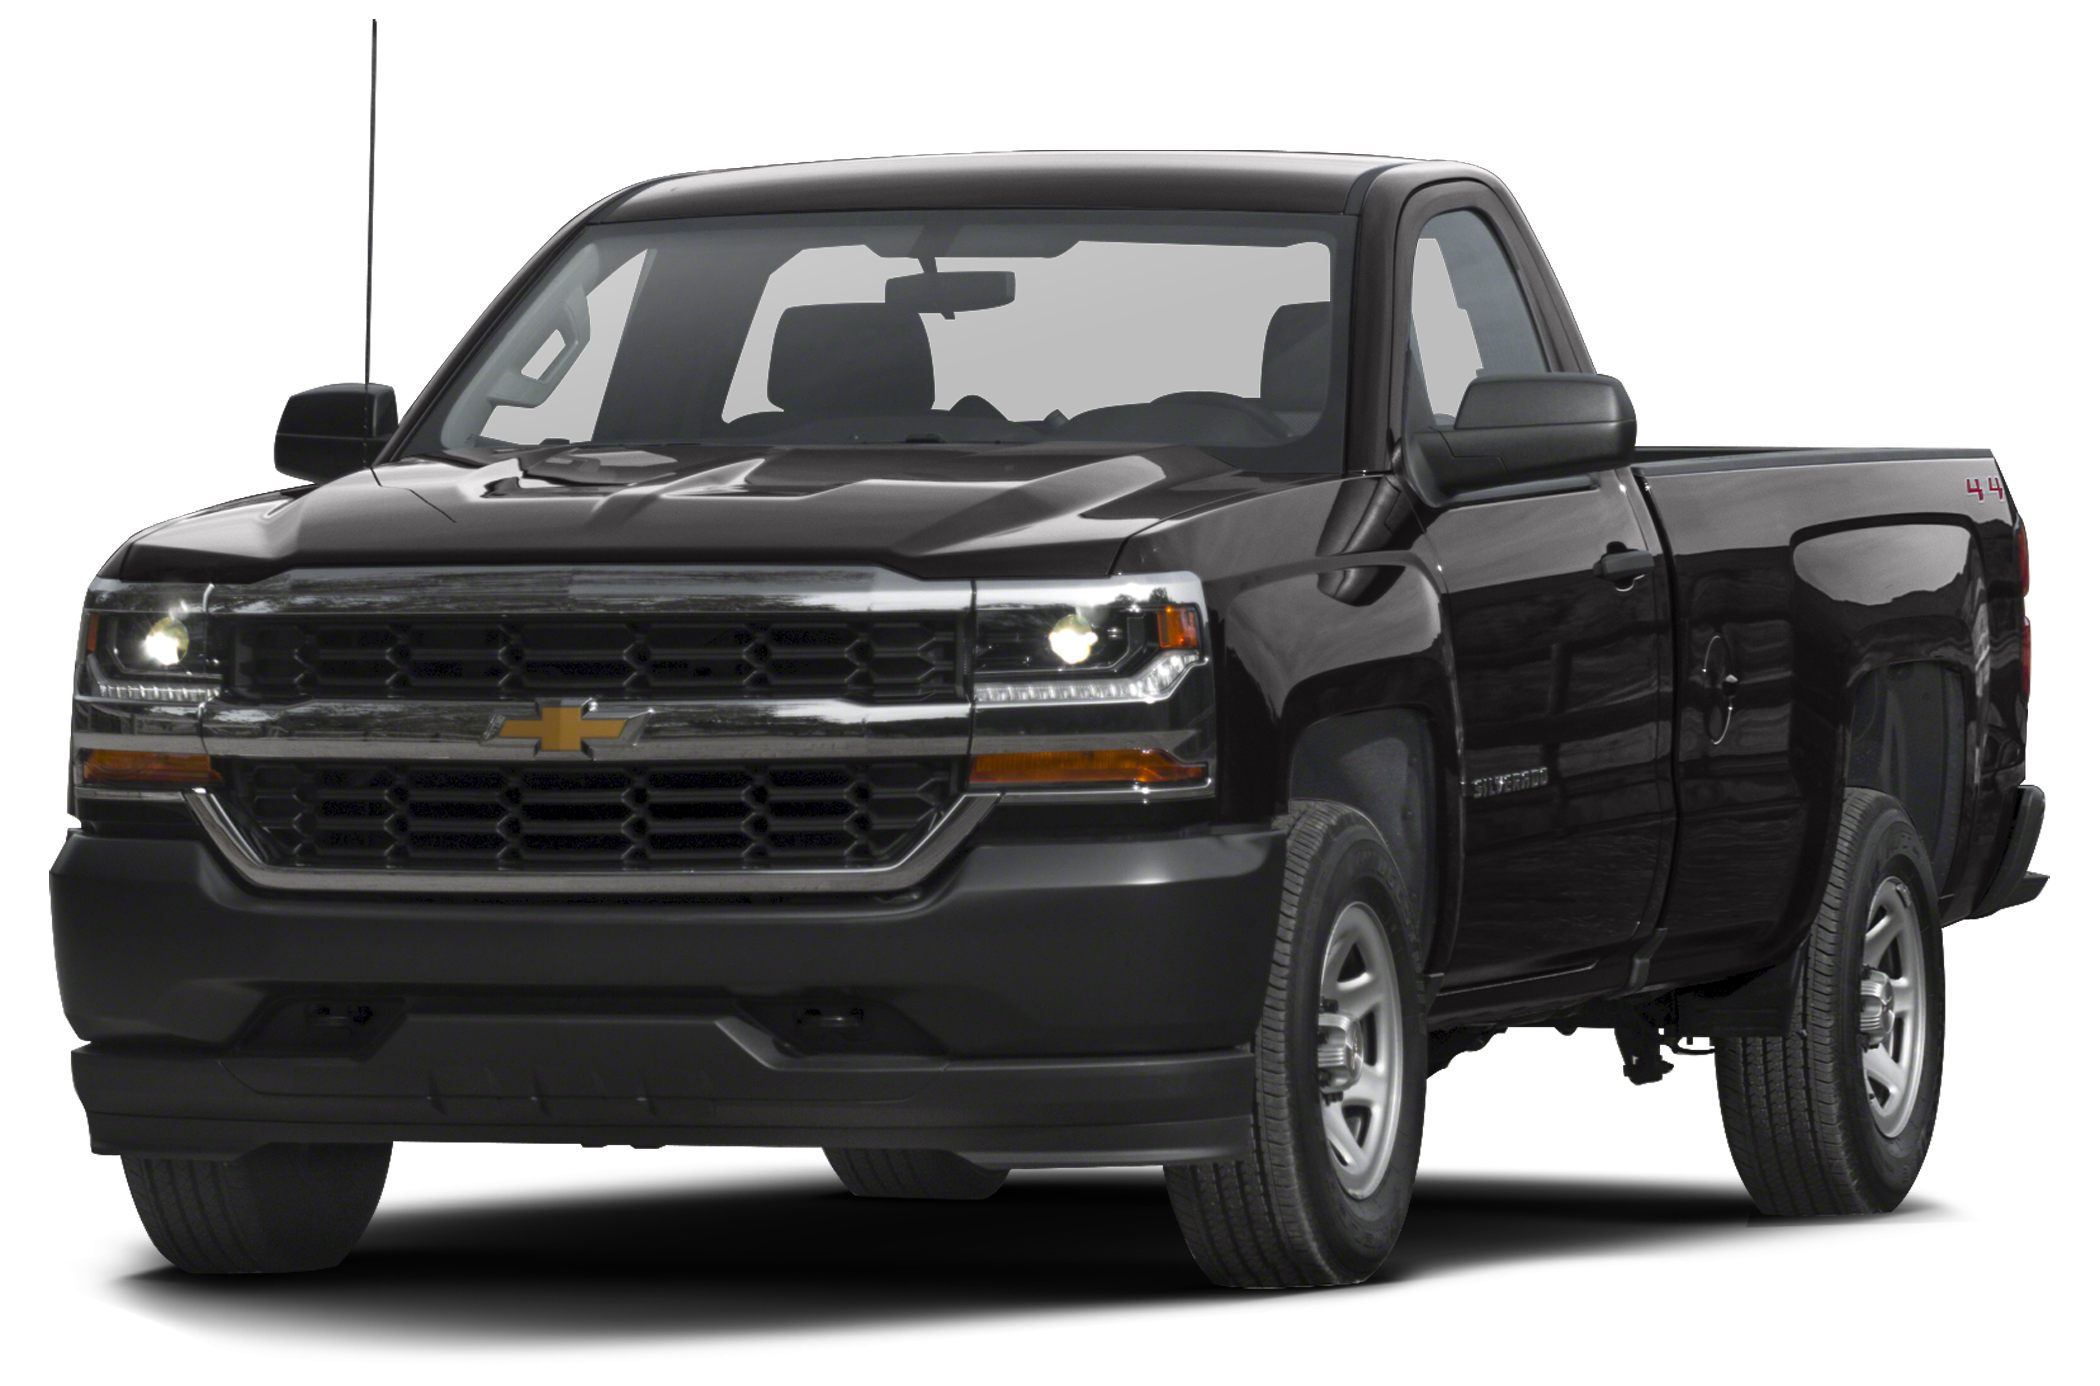 2016chevroletsilverado 1500. Black Bedroom Furniture Sets. Home Design Ideas